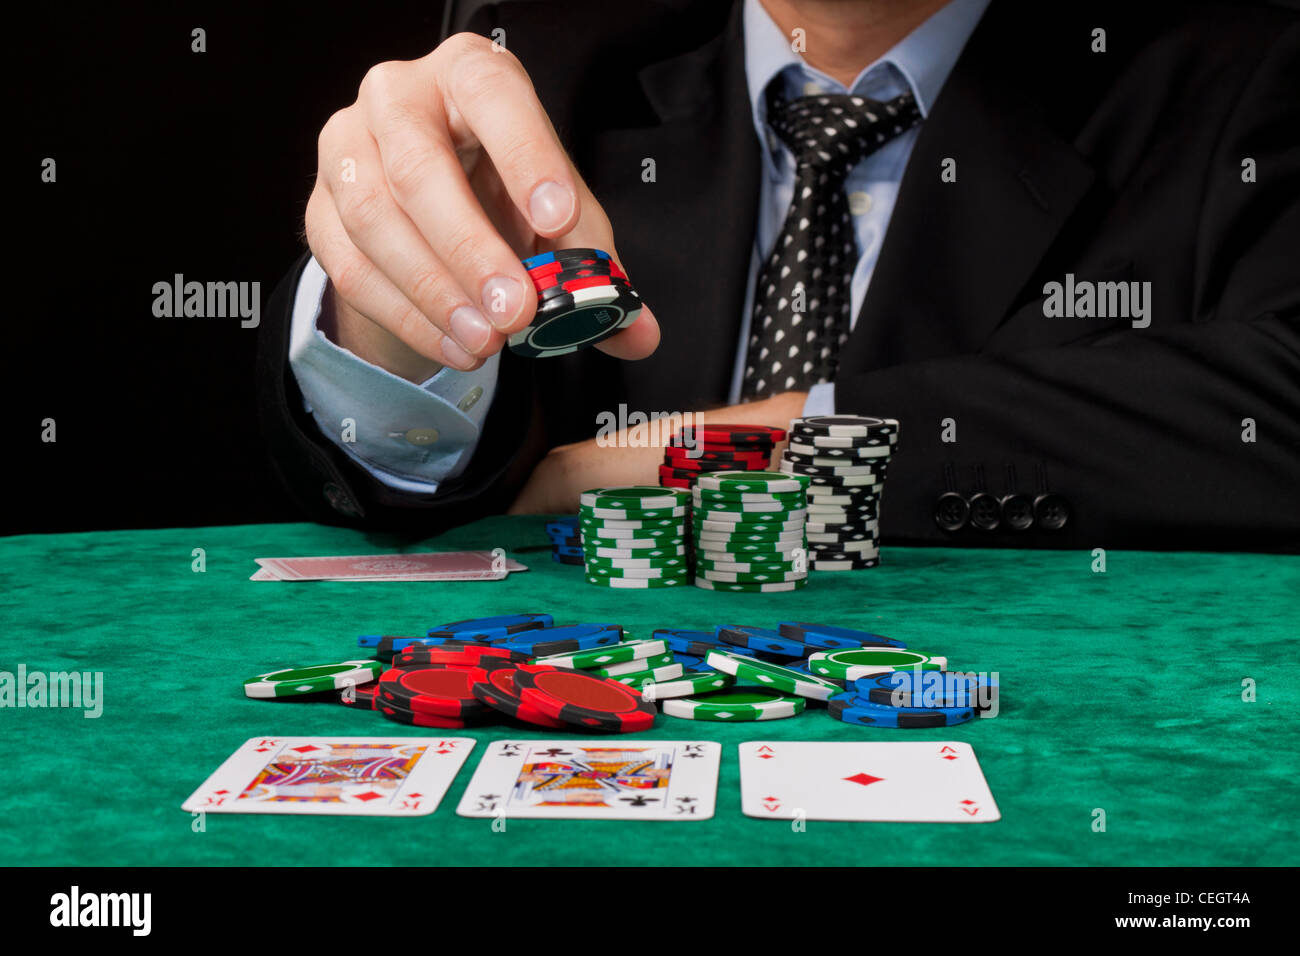 A businessman placing a bet in a Texas hold 'em poker game. - Stock Image